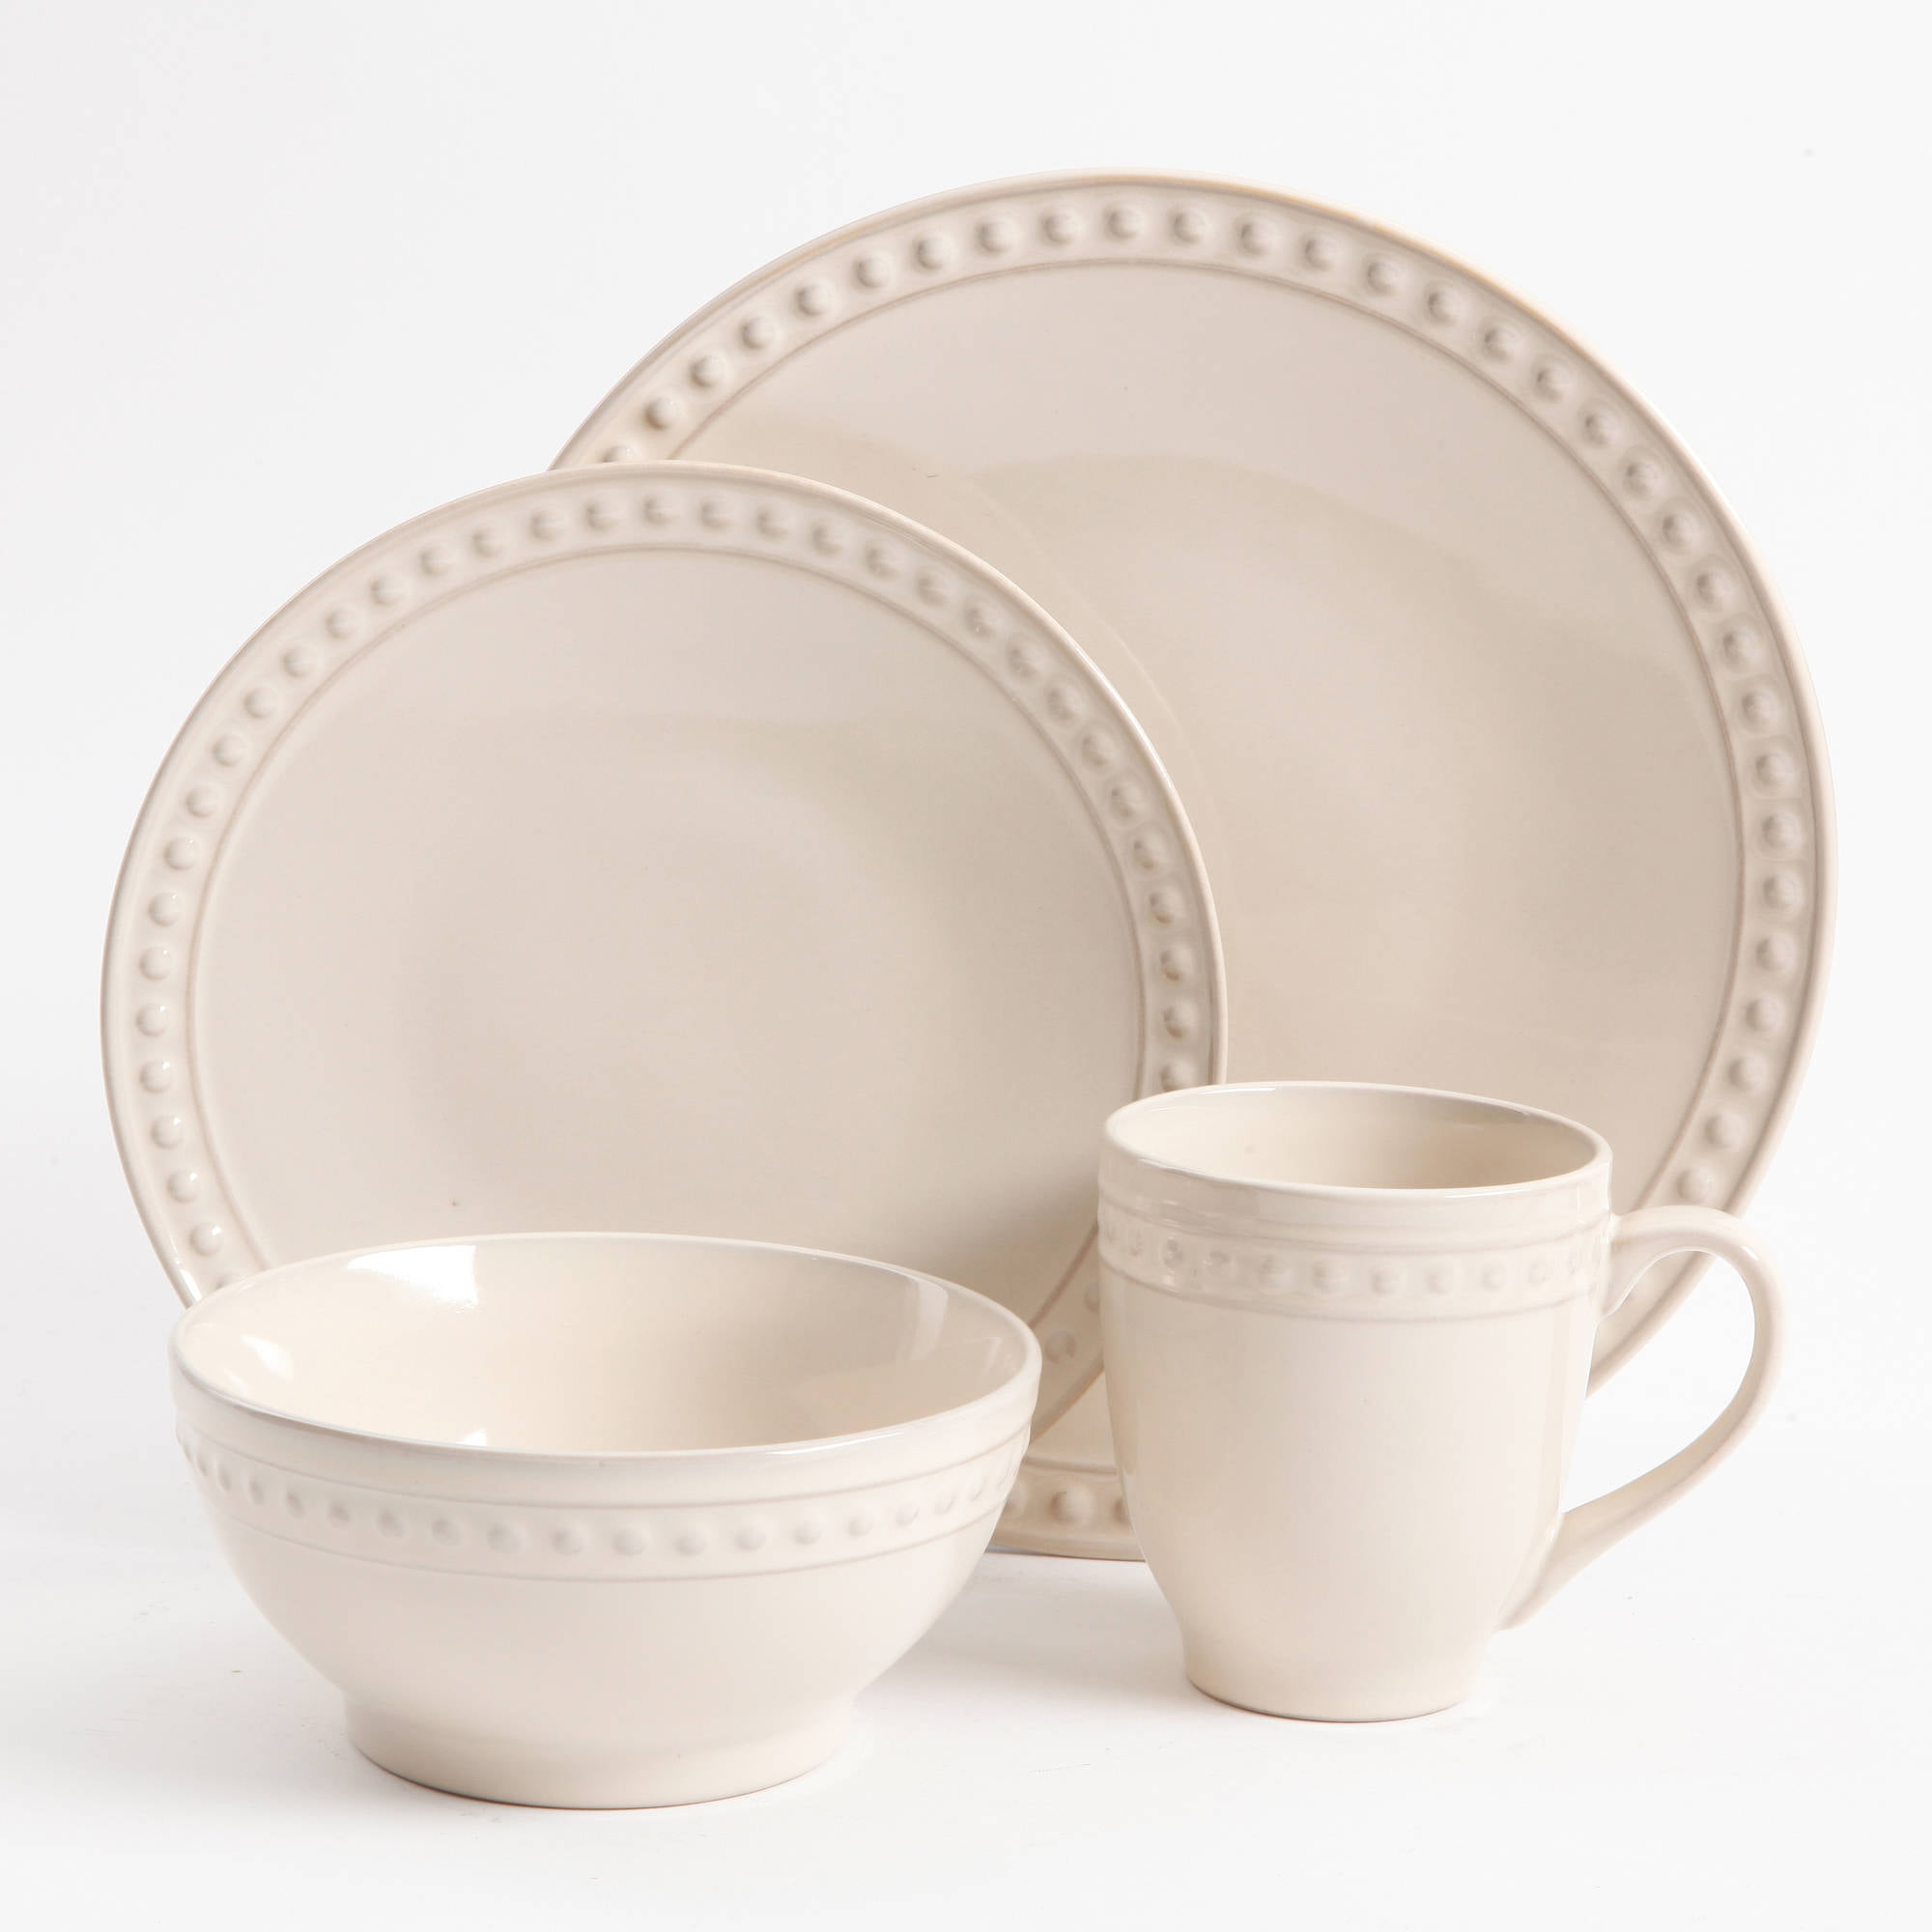 Better Homes and Gardens Amity 16 Piece Dinnerware Set Walmartcom